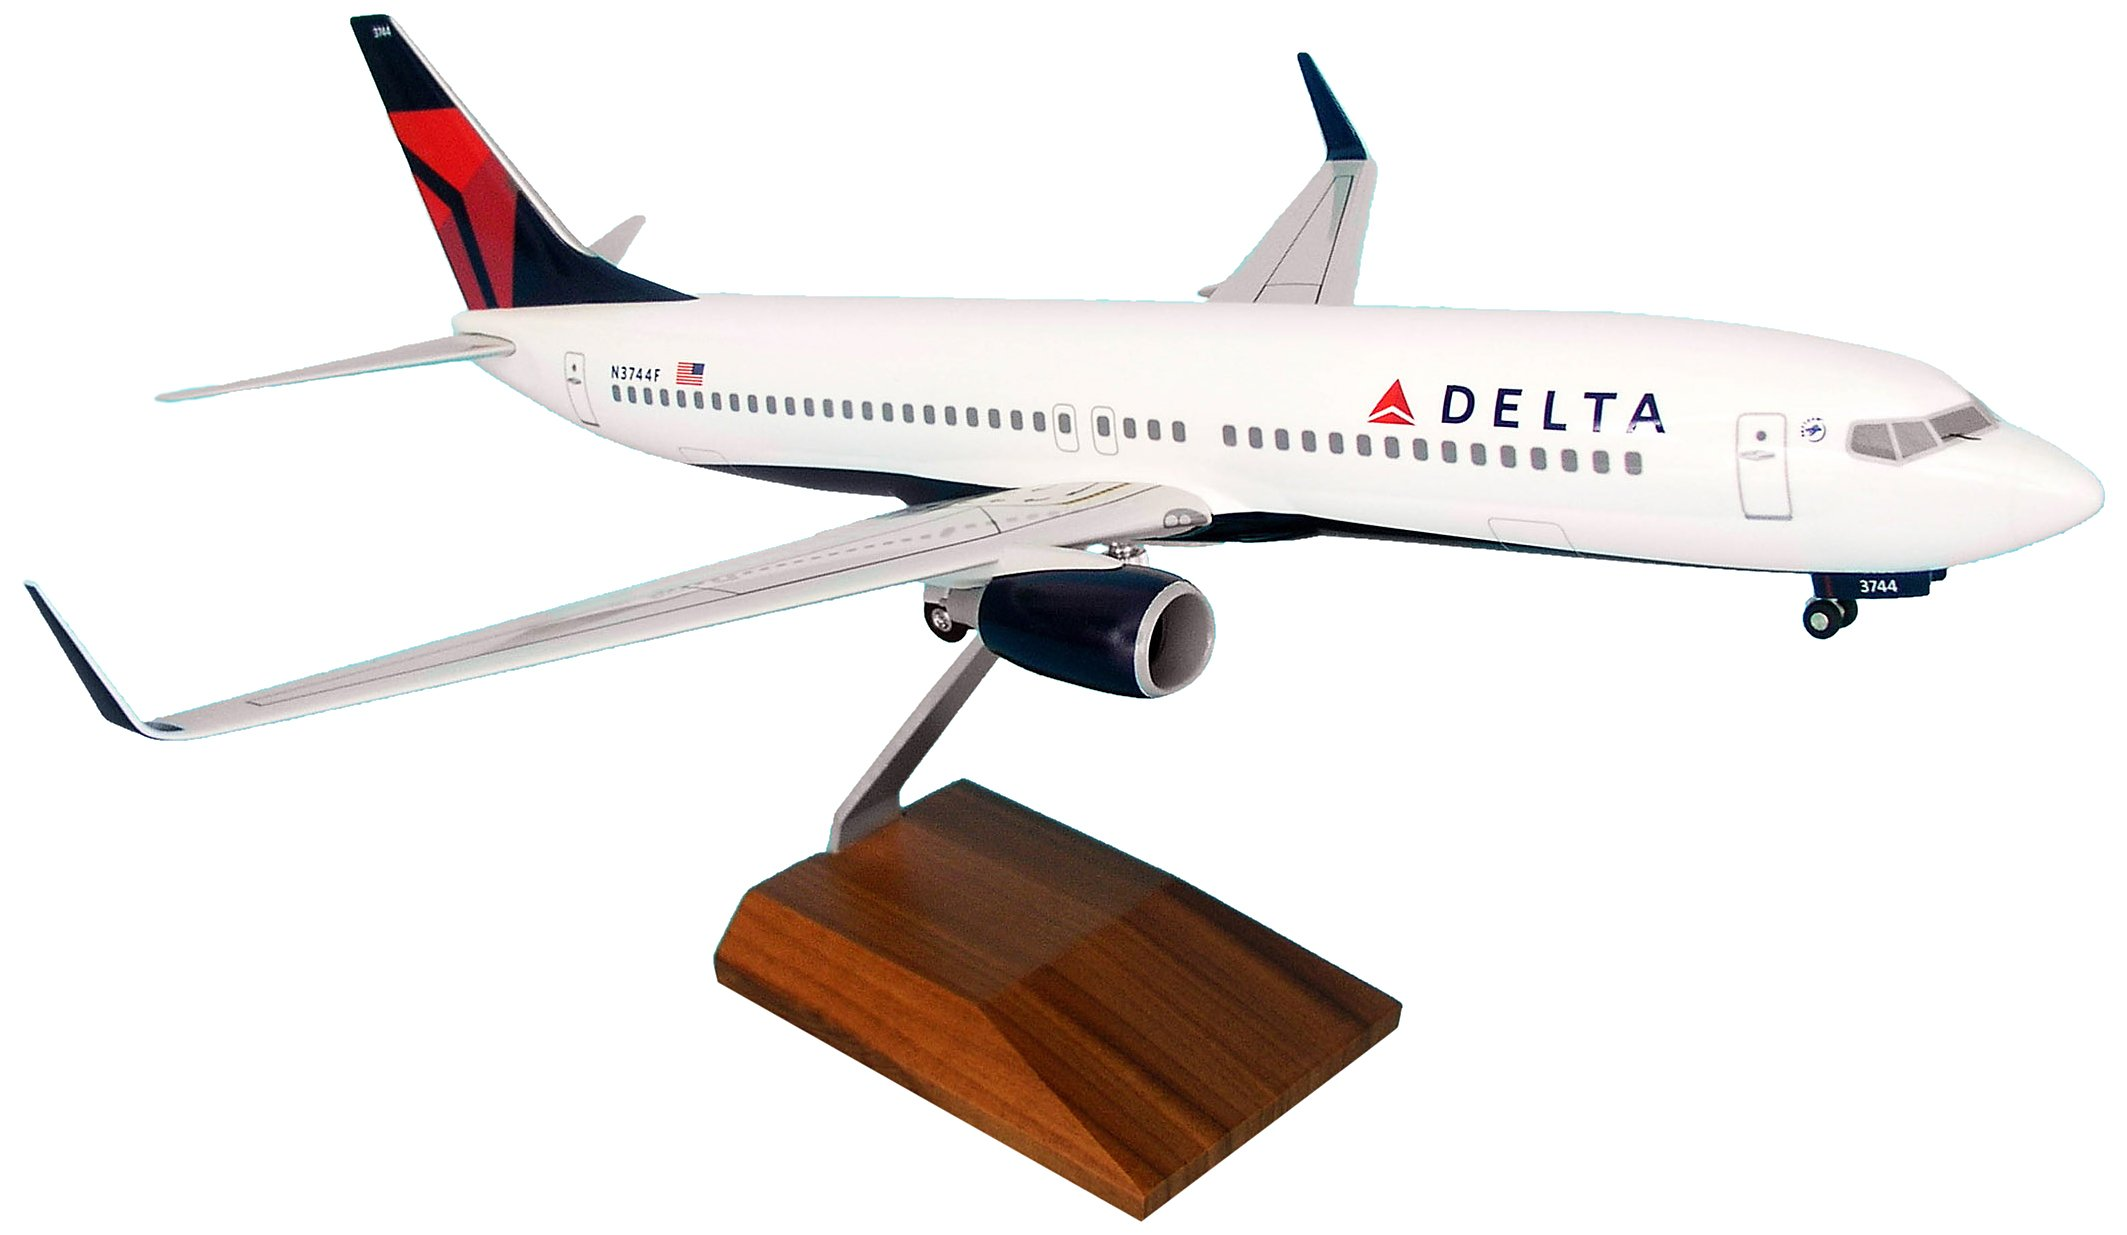 Daron Skymarks Delta 737-800 Model Kit with Gear and Wood Stand (1/100 Scale)